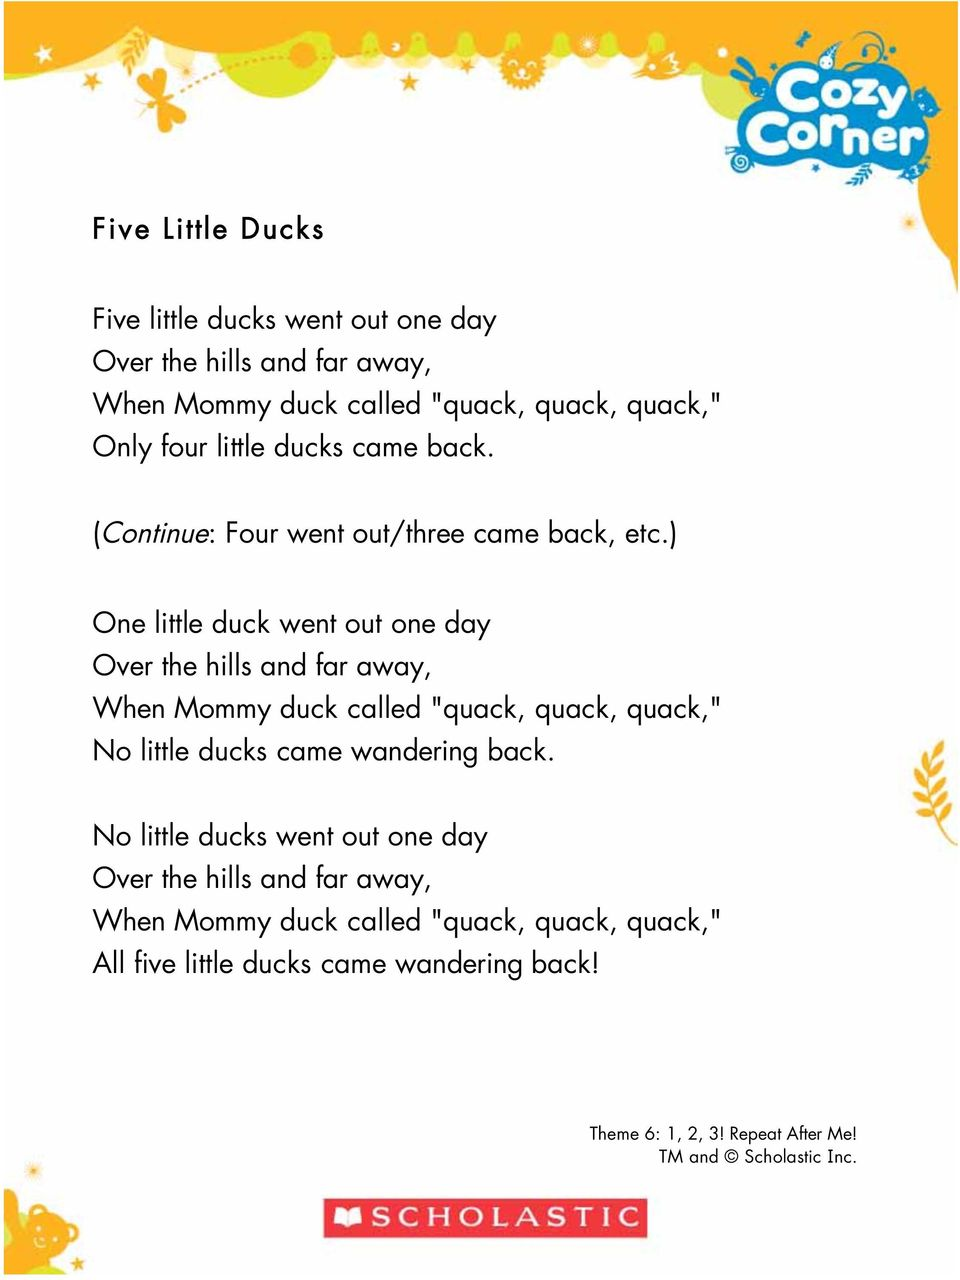 ") One little duck went out one day Over the hills and far away, When Mommy duck called ""quack, quack, quack,"" No little ducks came"